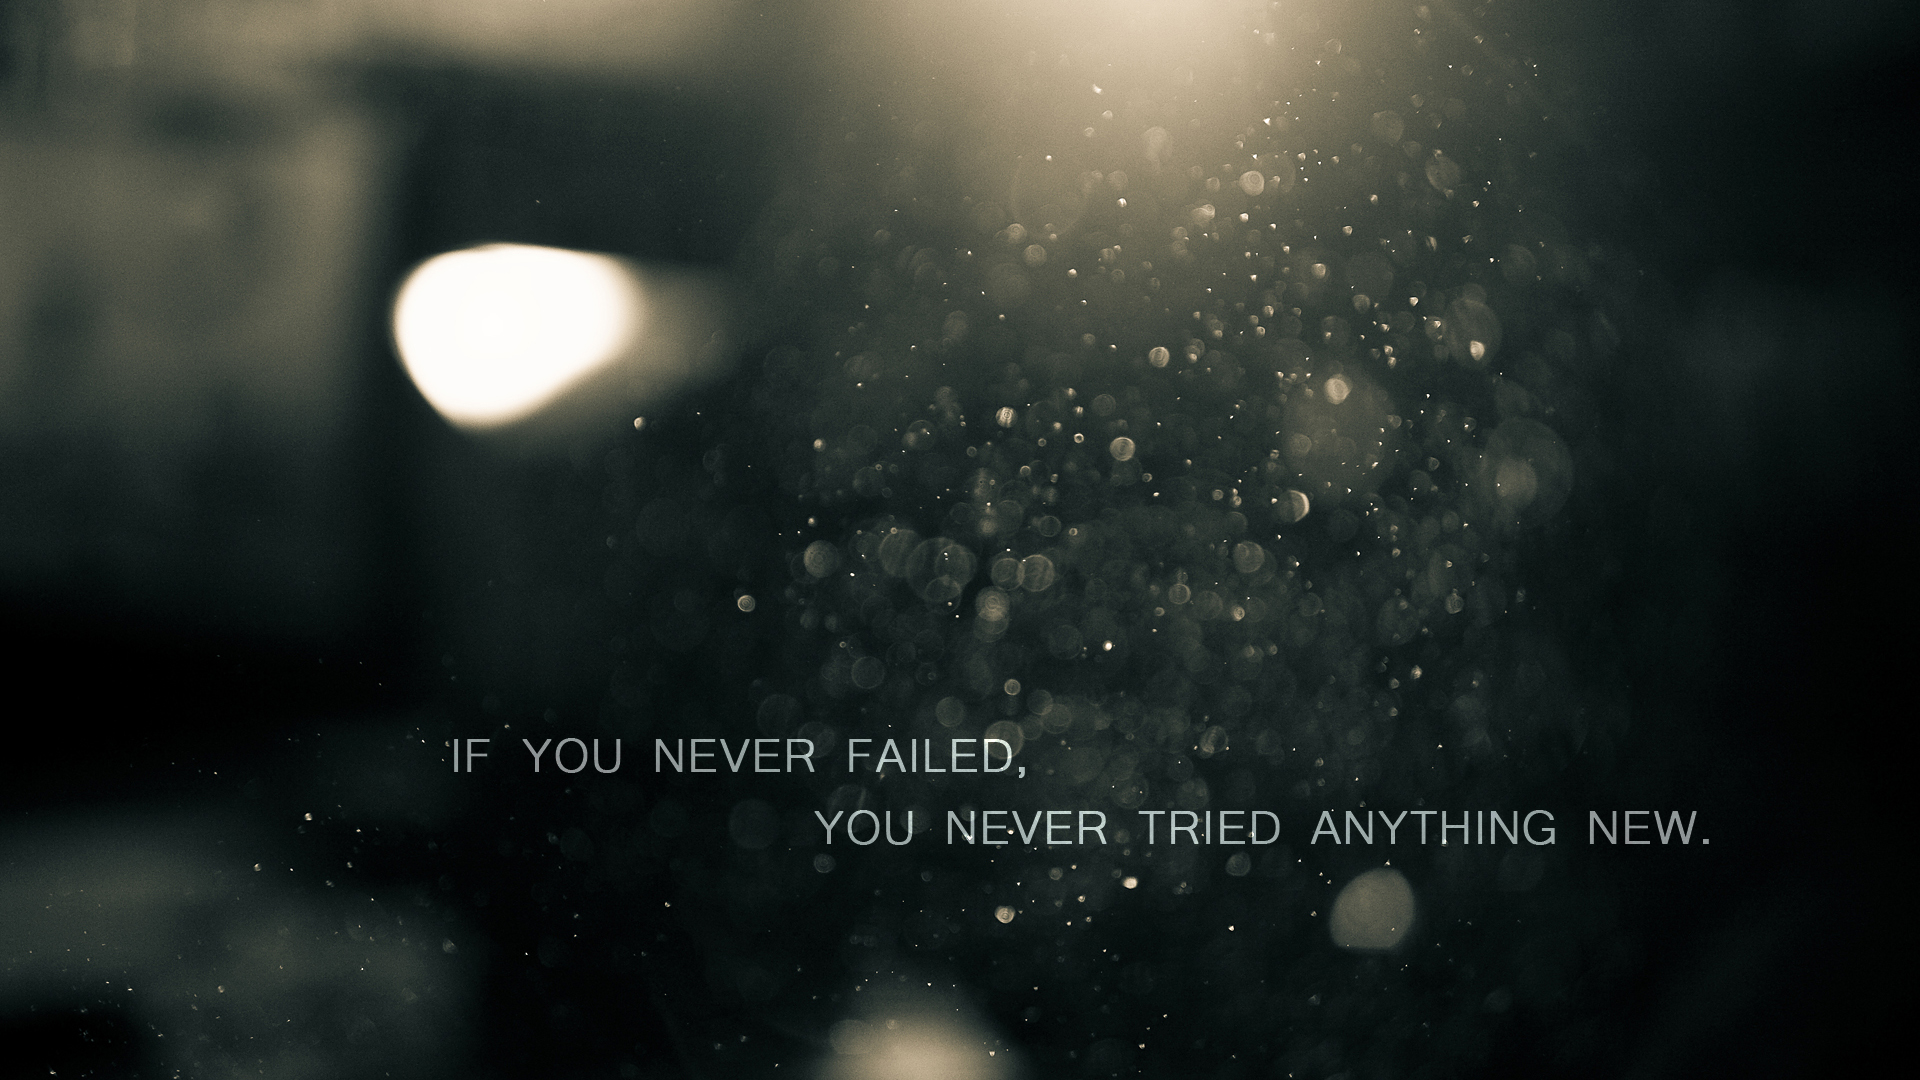 Motivational Wallpapers  67 Inspirational Wallpaper Quotes